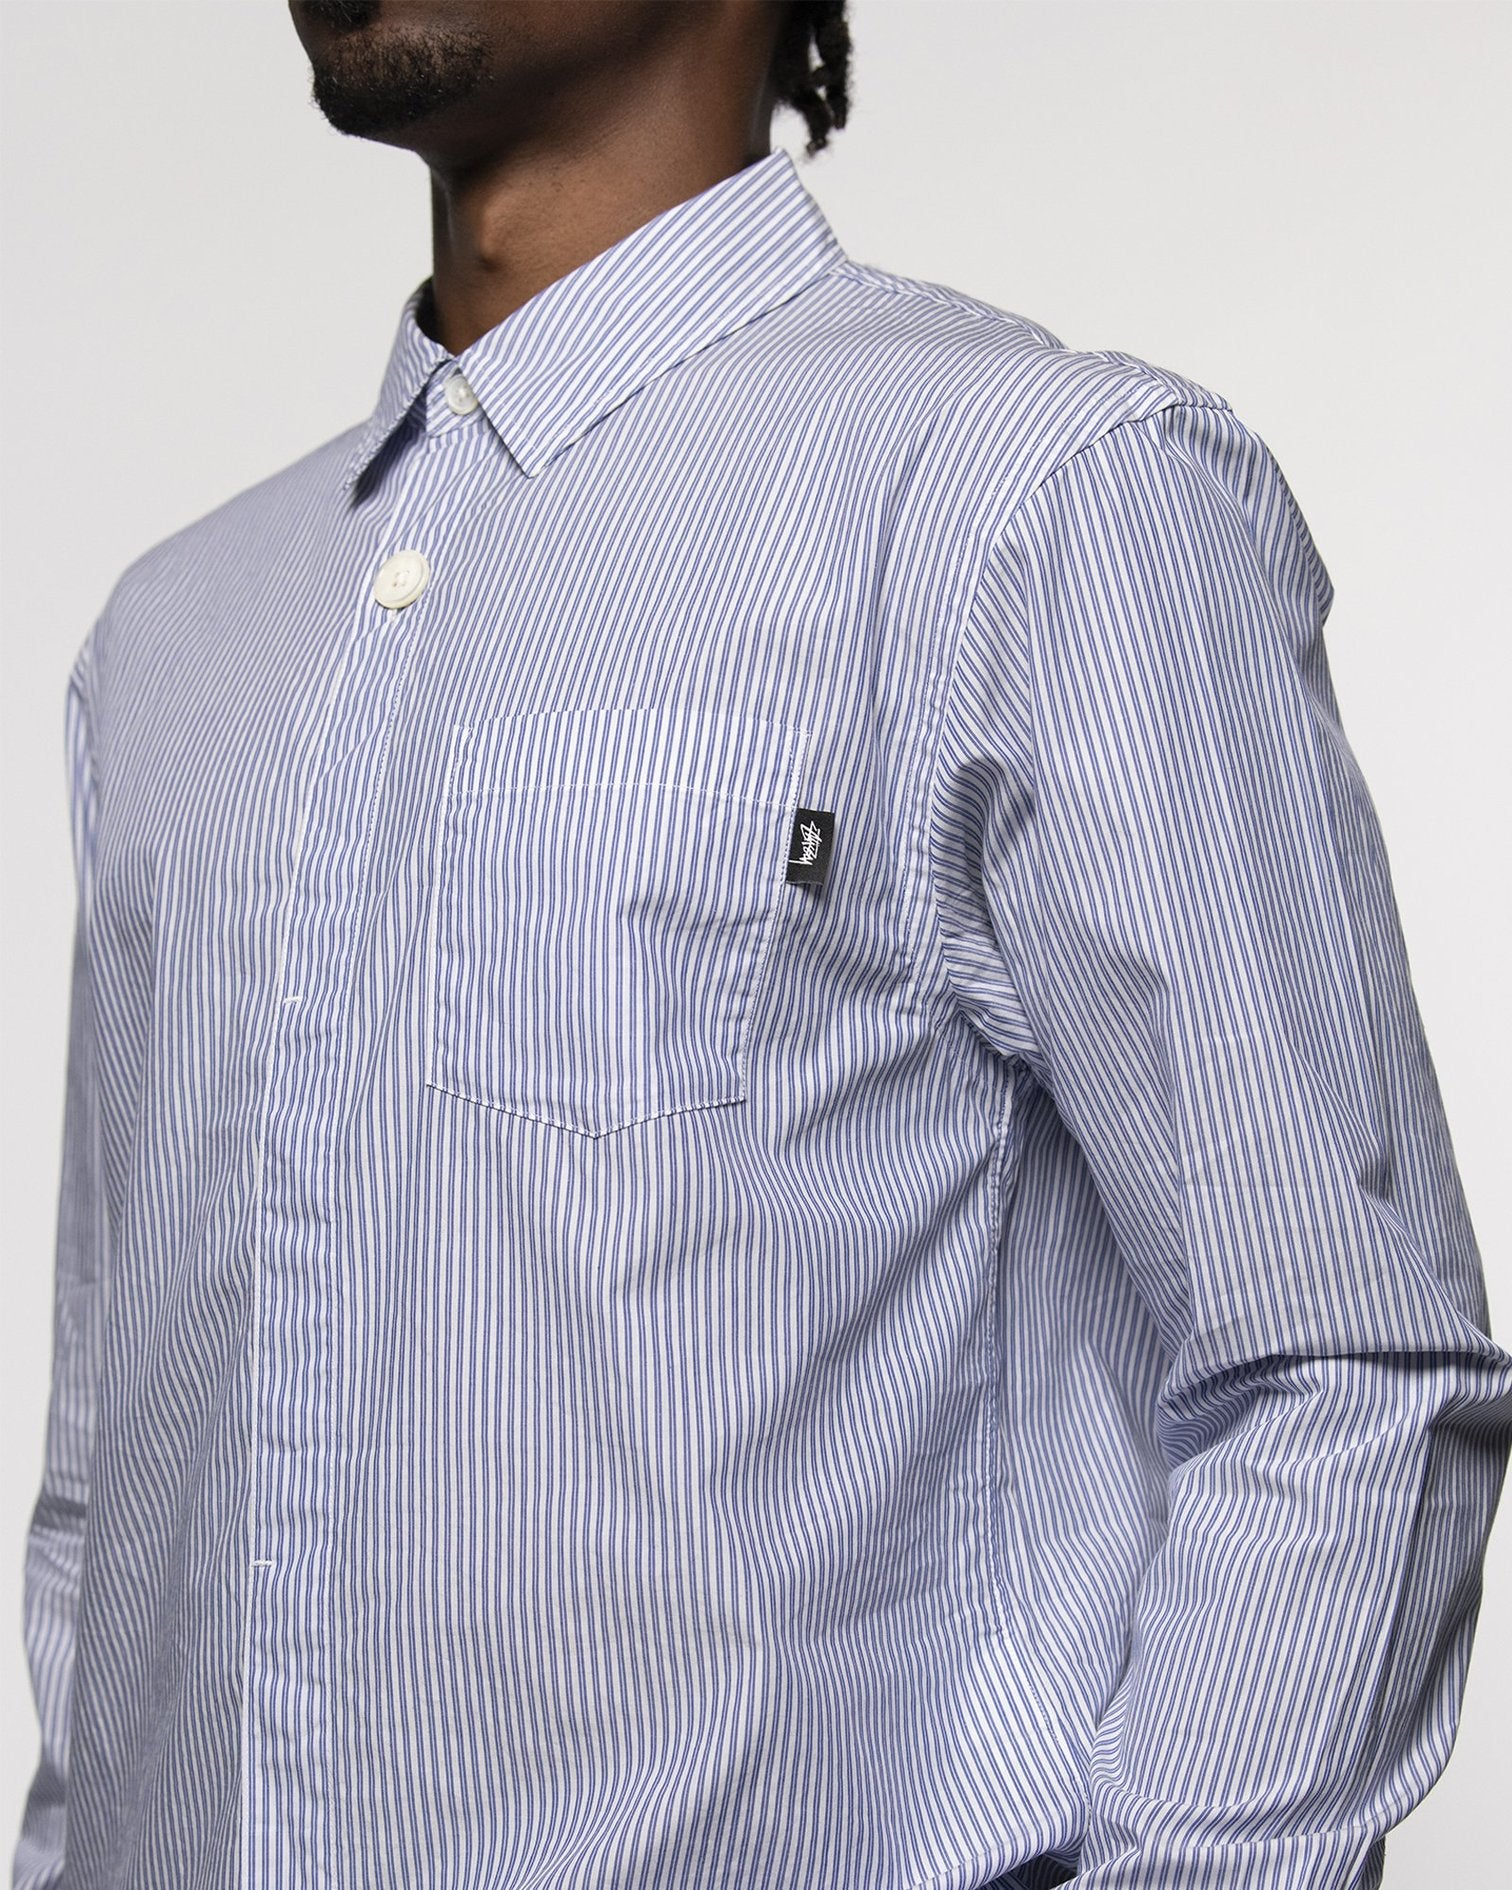 STUSSY M'S SHIRTS BIG BUTTON STRIPE SHIRT